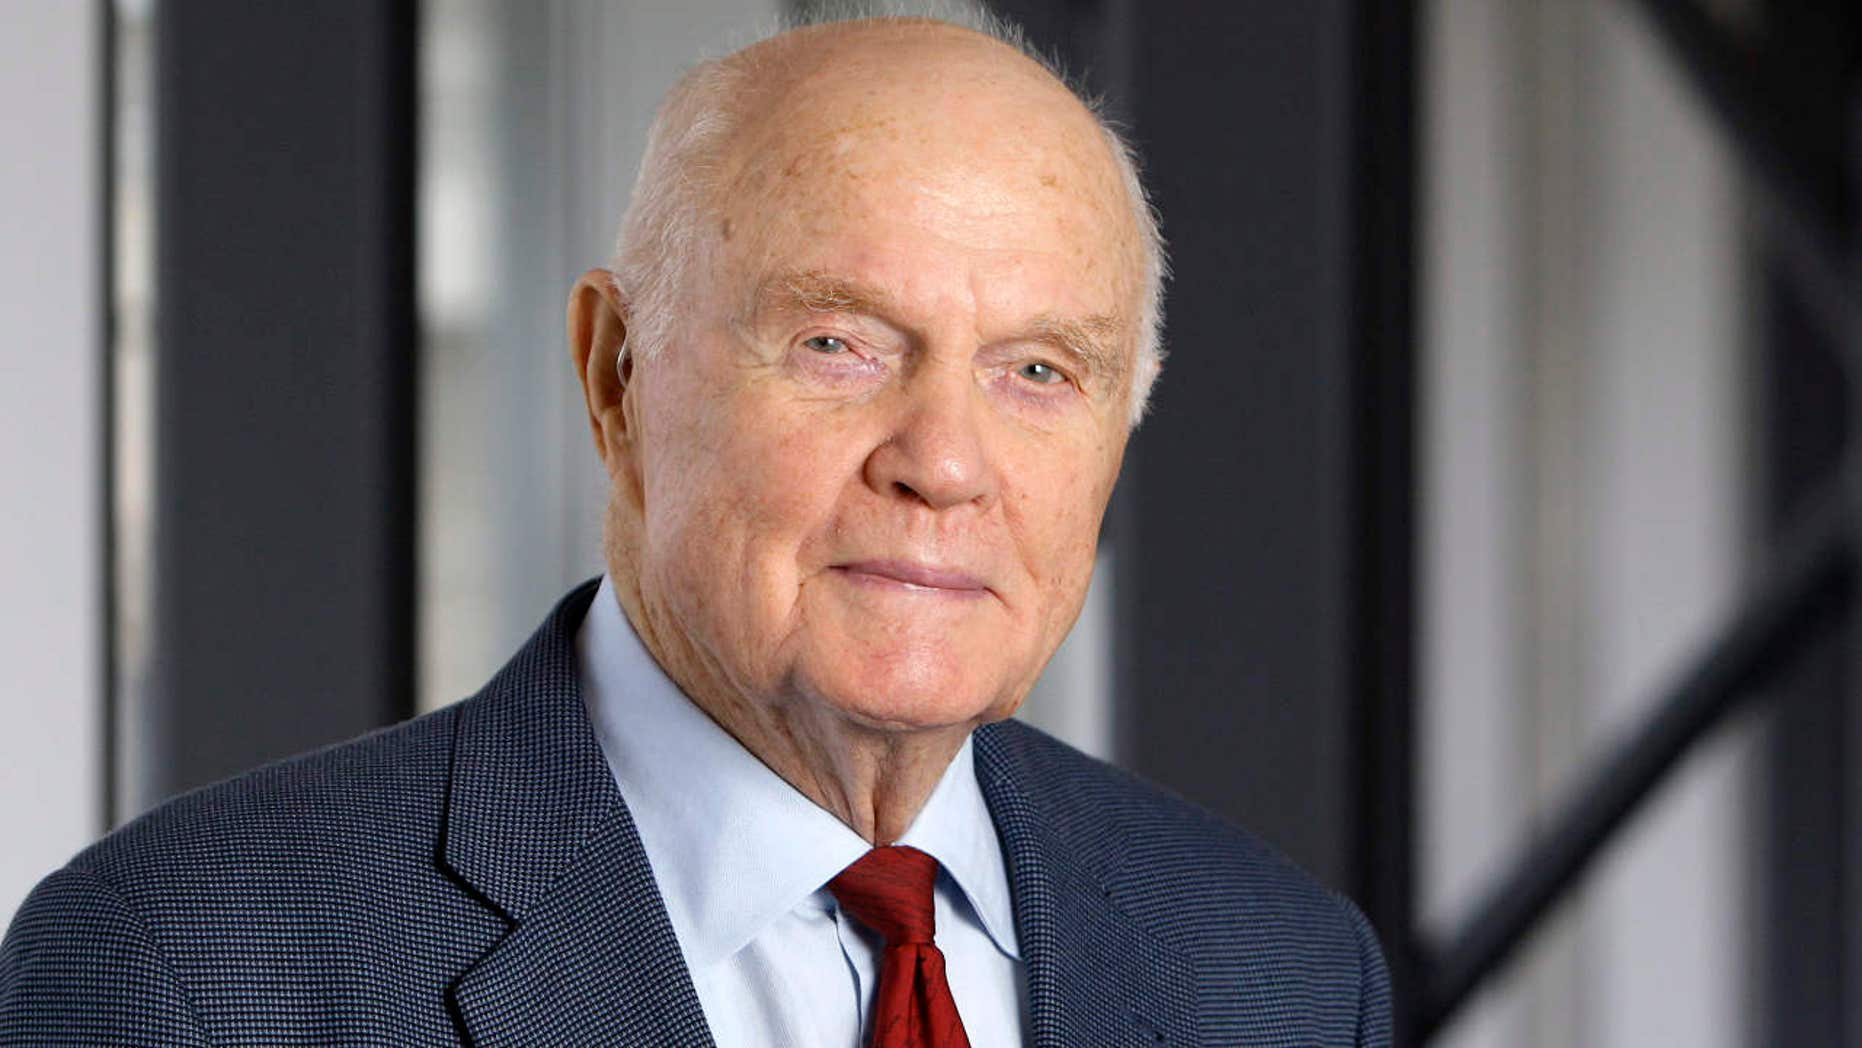 FILE - In this Jan. 25, 2012, file photo, former astronaut and Sen. John Glenn poses for a photo during an interview at his office in Columbus, Ohio.